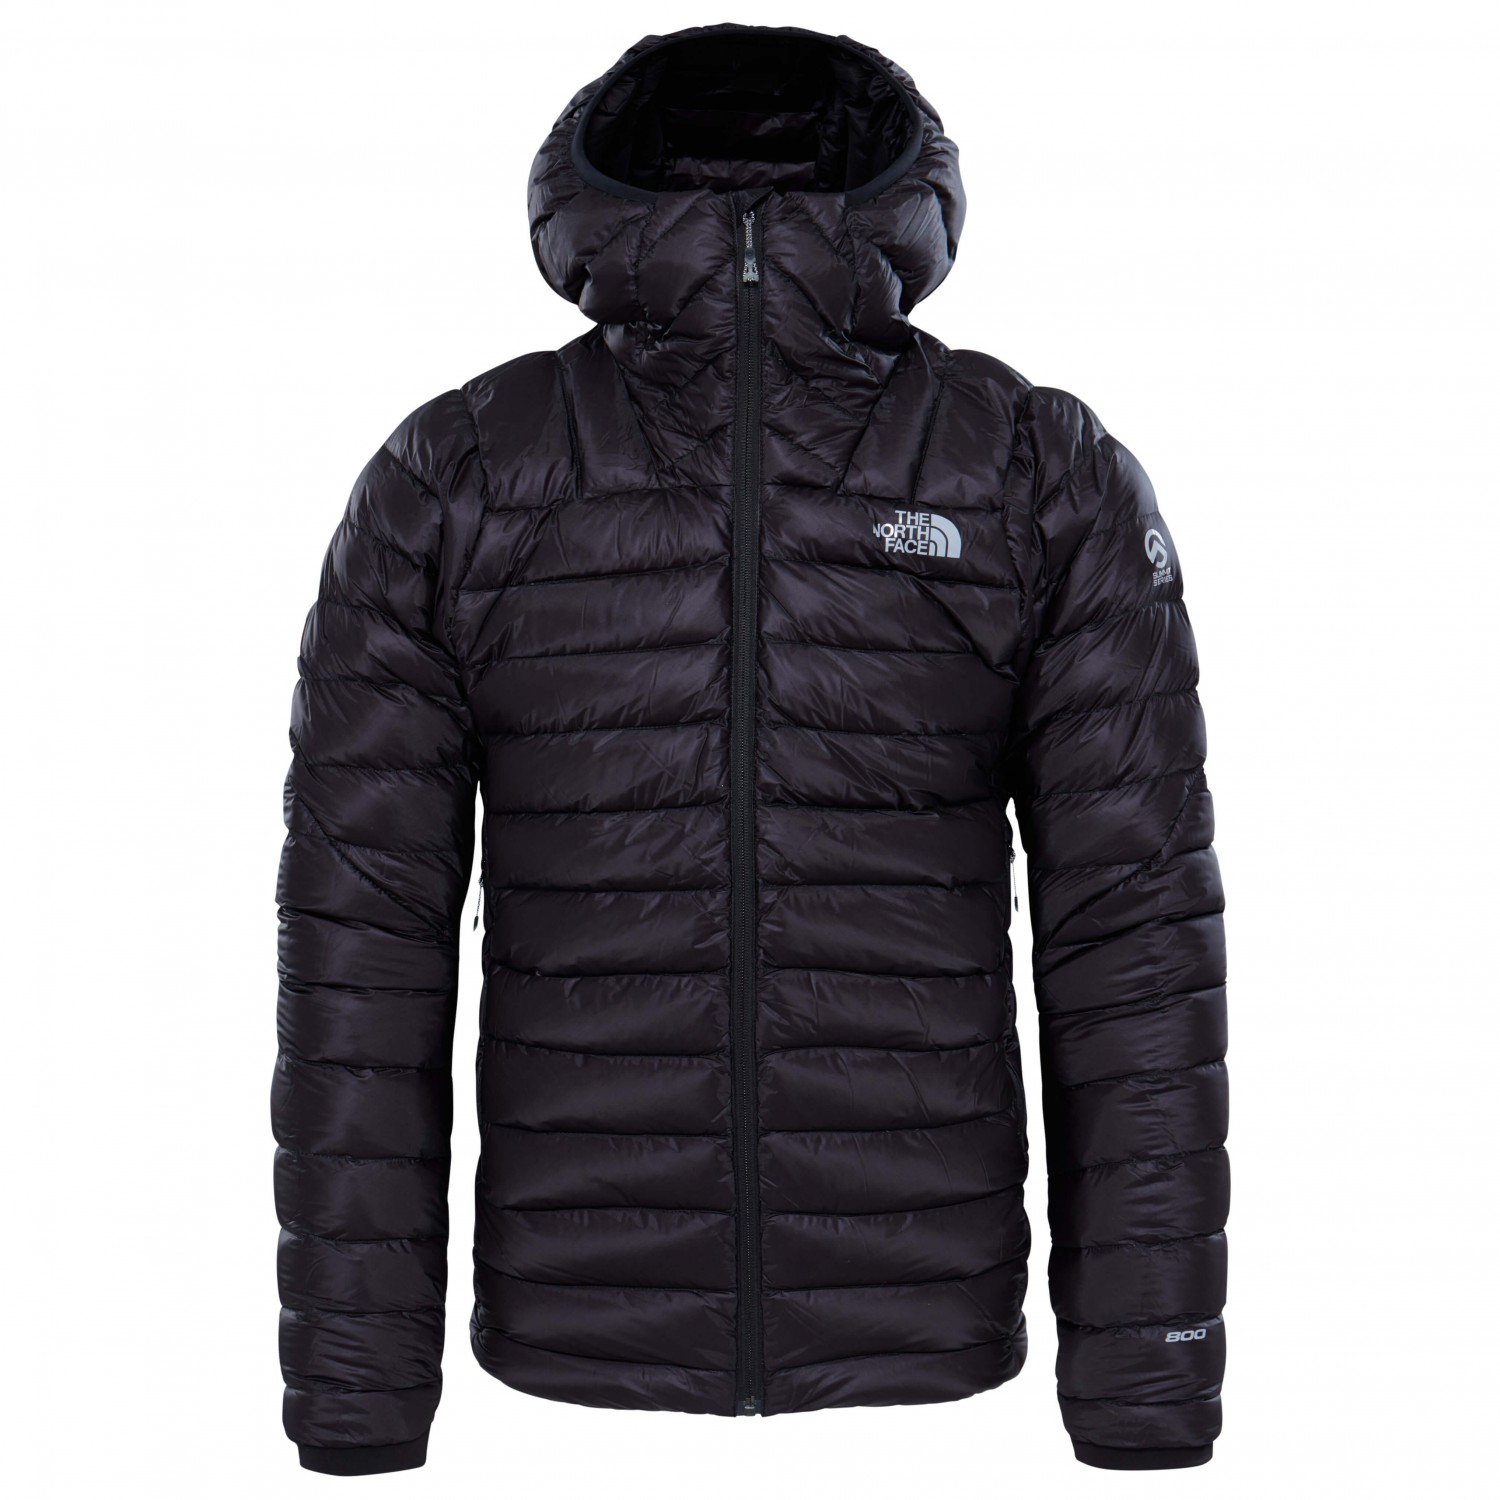 Fiery Summit Tnf Hoodie The North Black Face Down L Red Giacca L3 In Piumino annzESqxXw